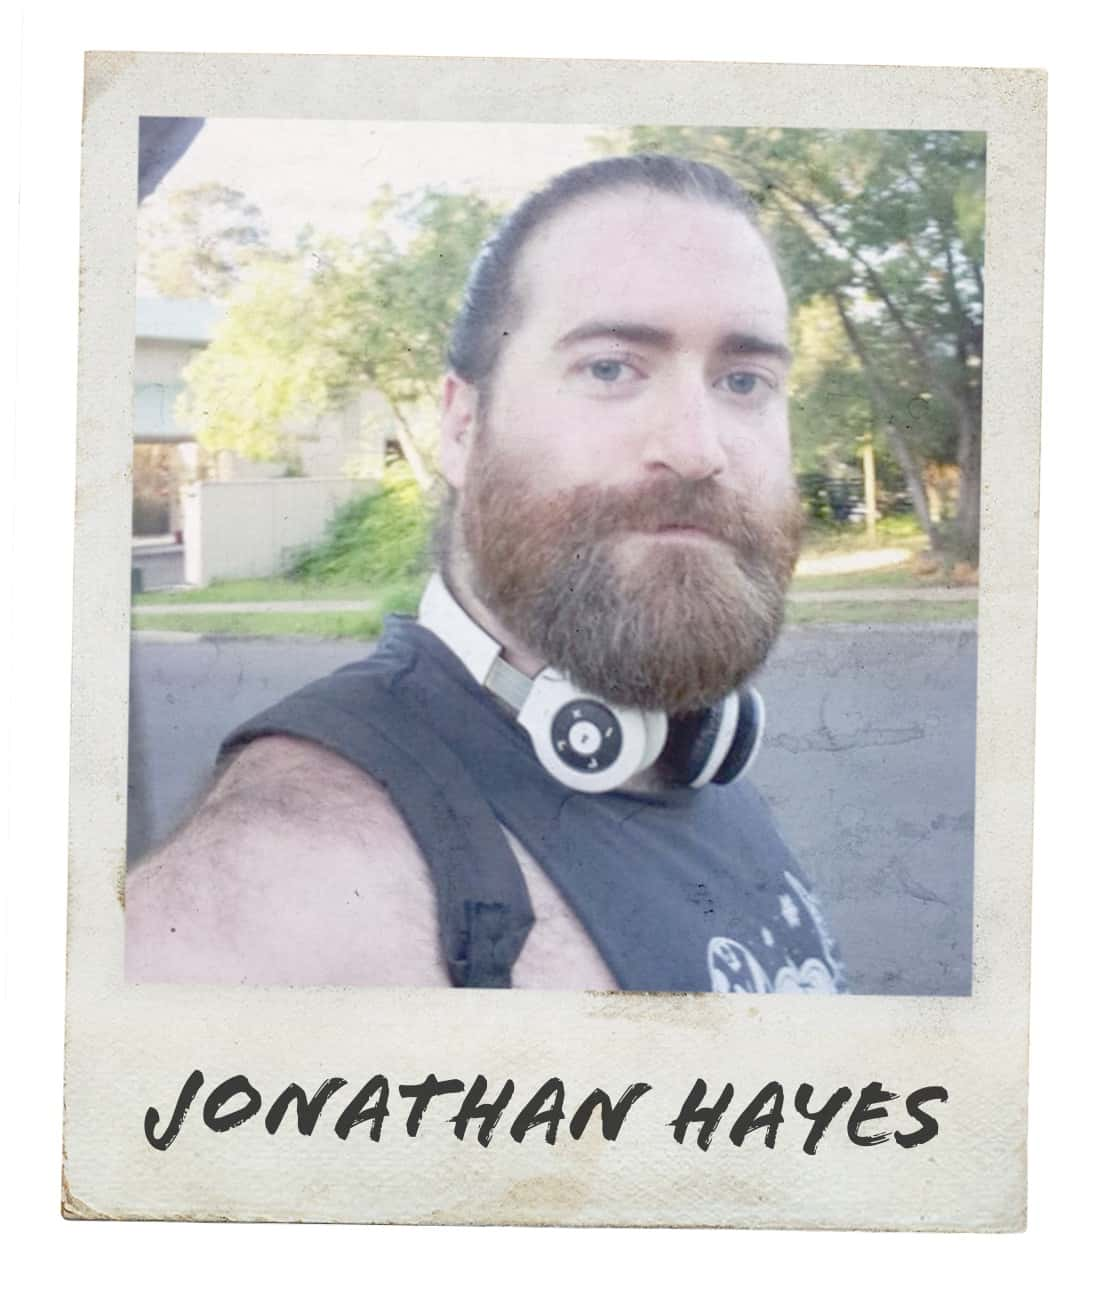 "Polaroid-style photo of bearded man with headphones taking a selfie for #mygcn campaign. Under the photo the caption reads ""Jonathan Hayes""."